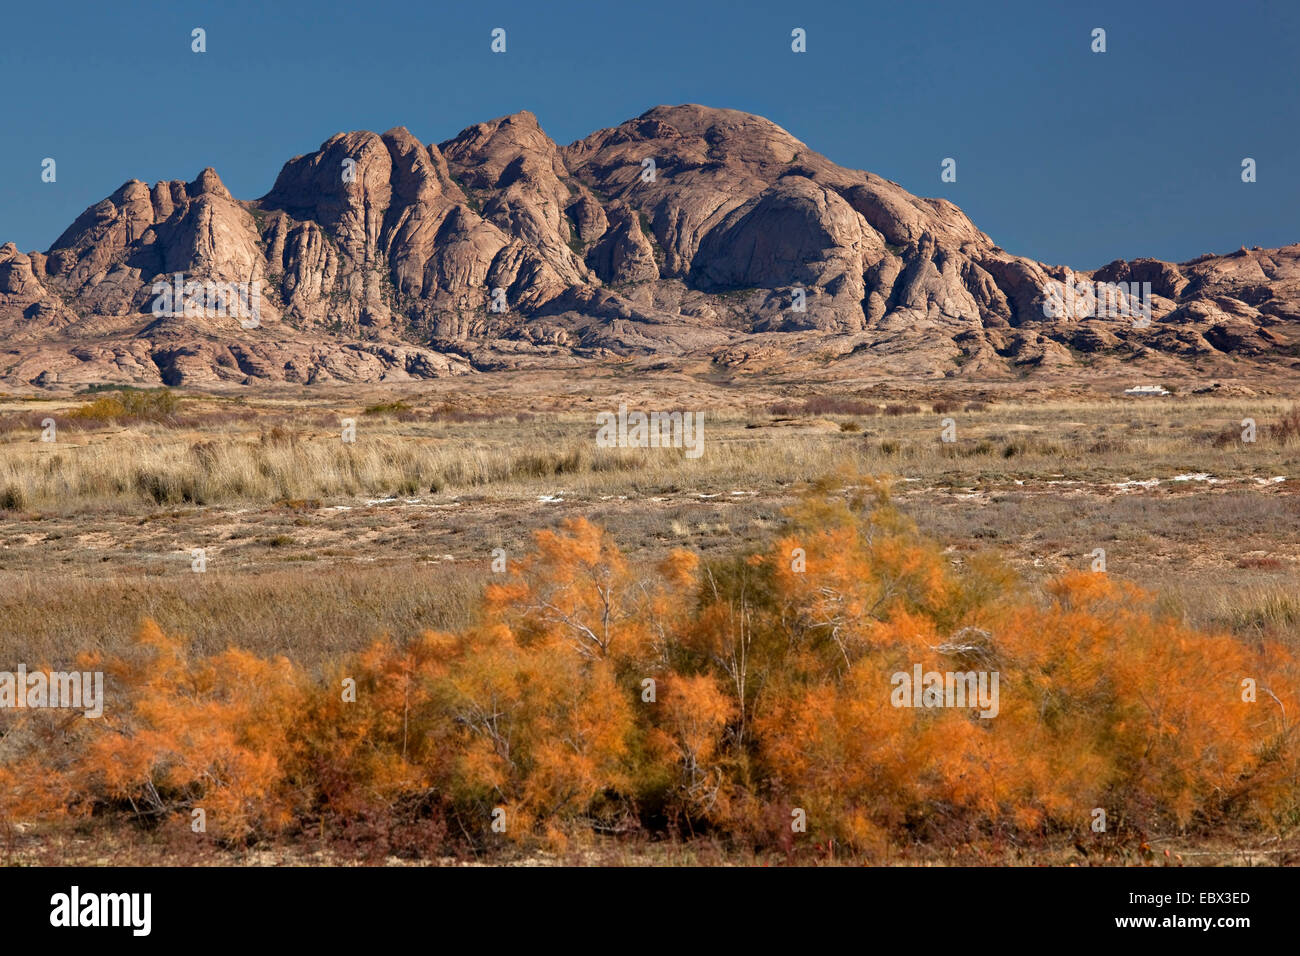 rock formation looming from a steppe landscape, Kazakhstan, Suedost-Kasachstan, Balchasch - Stock Image